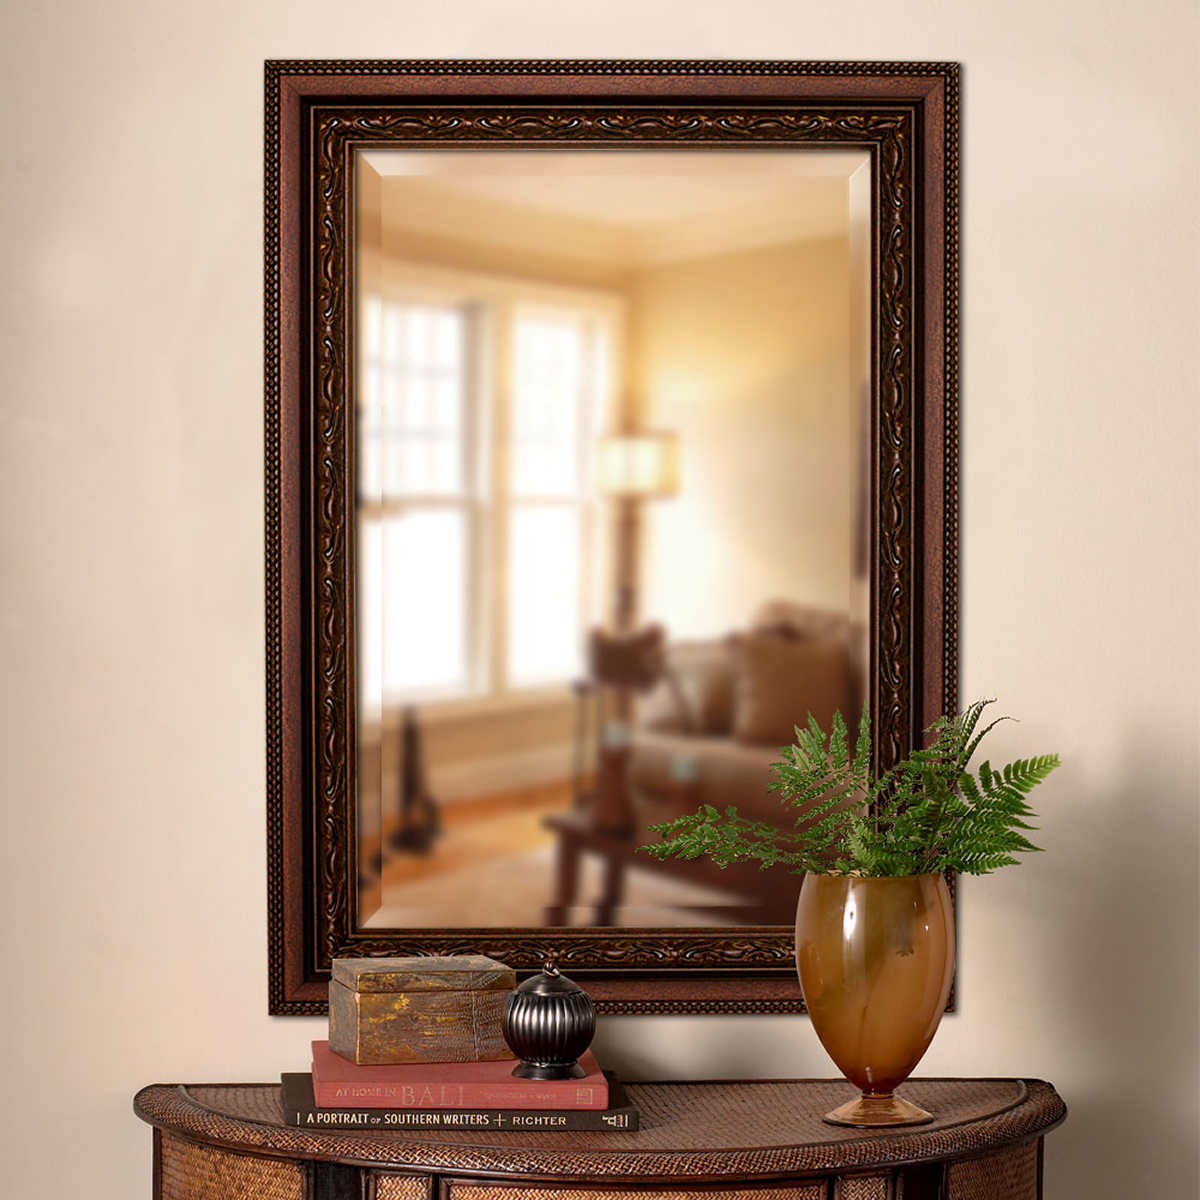 Dressing table designs with full length mirror for girls - Addyson Mirror